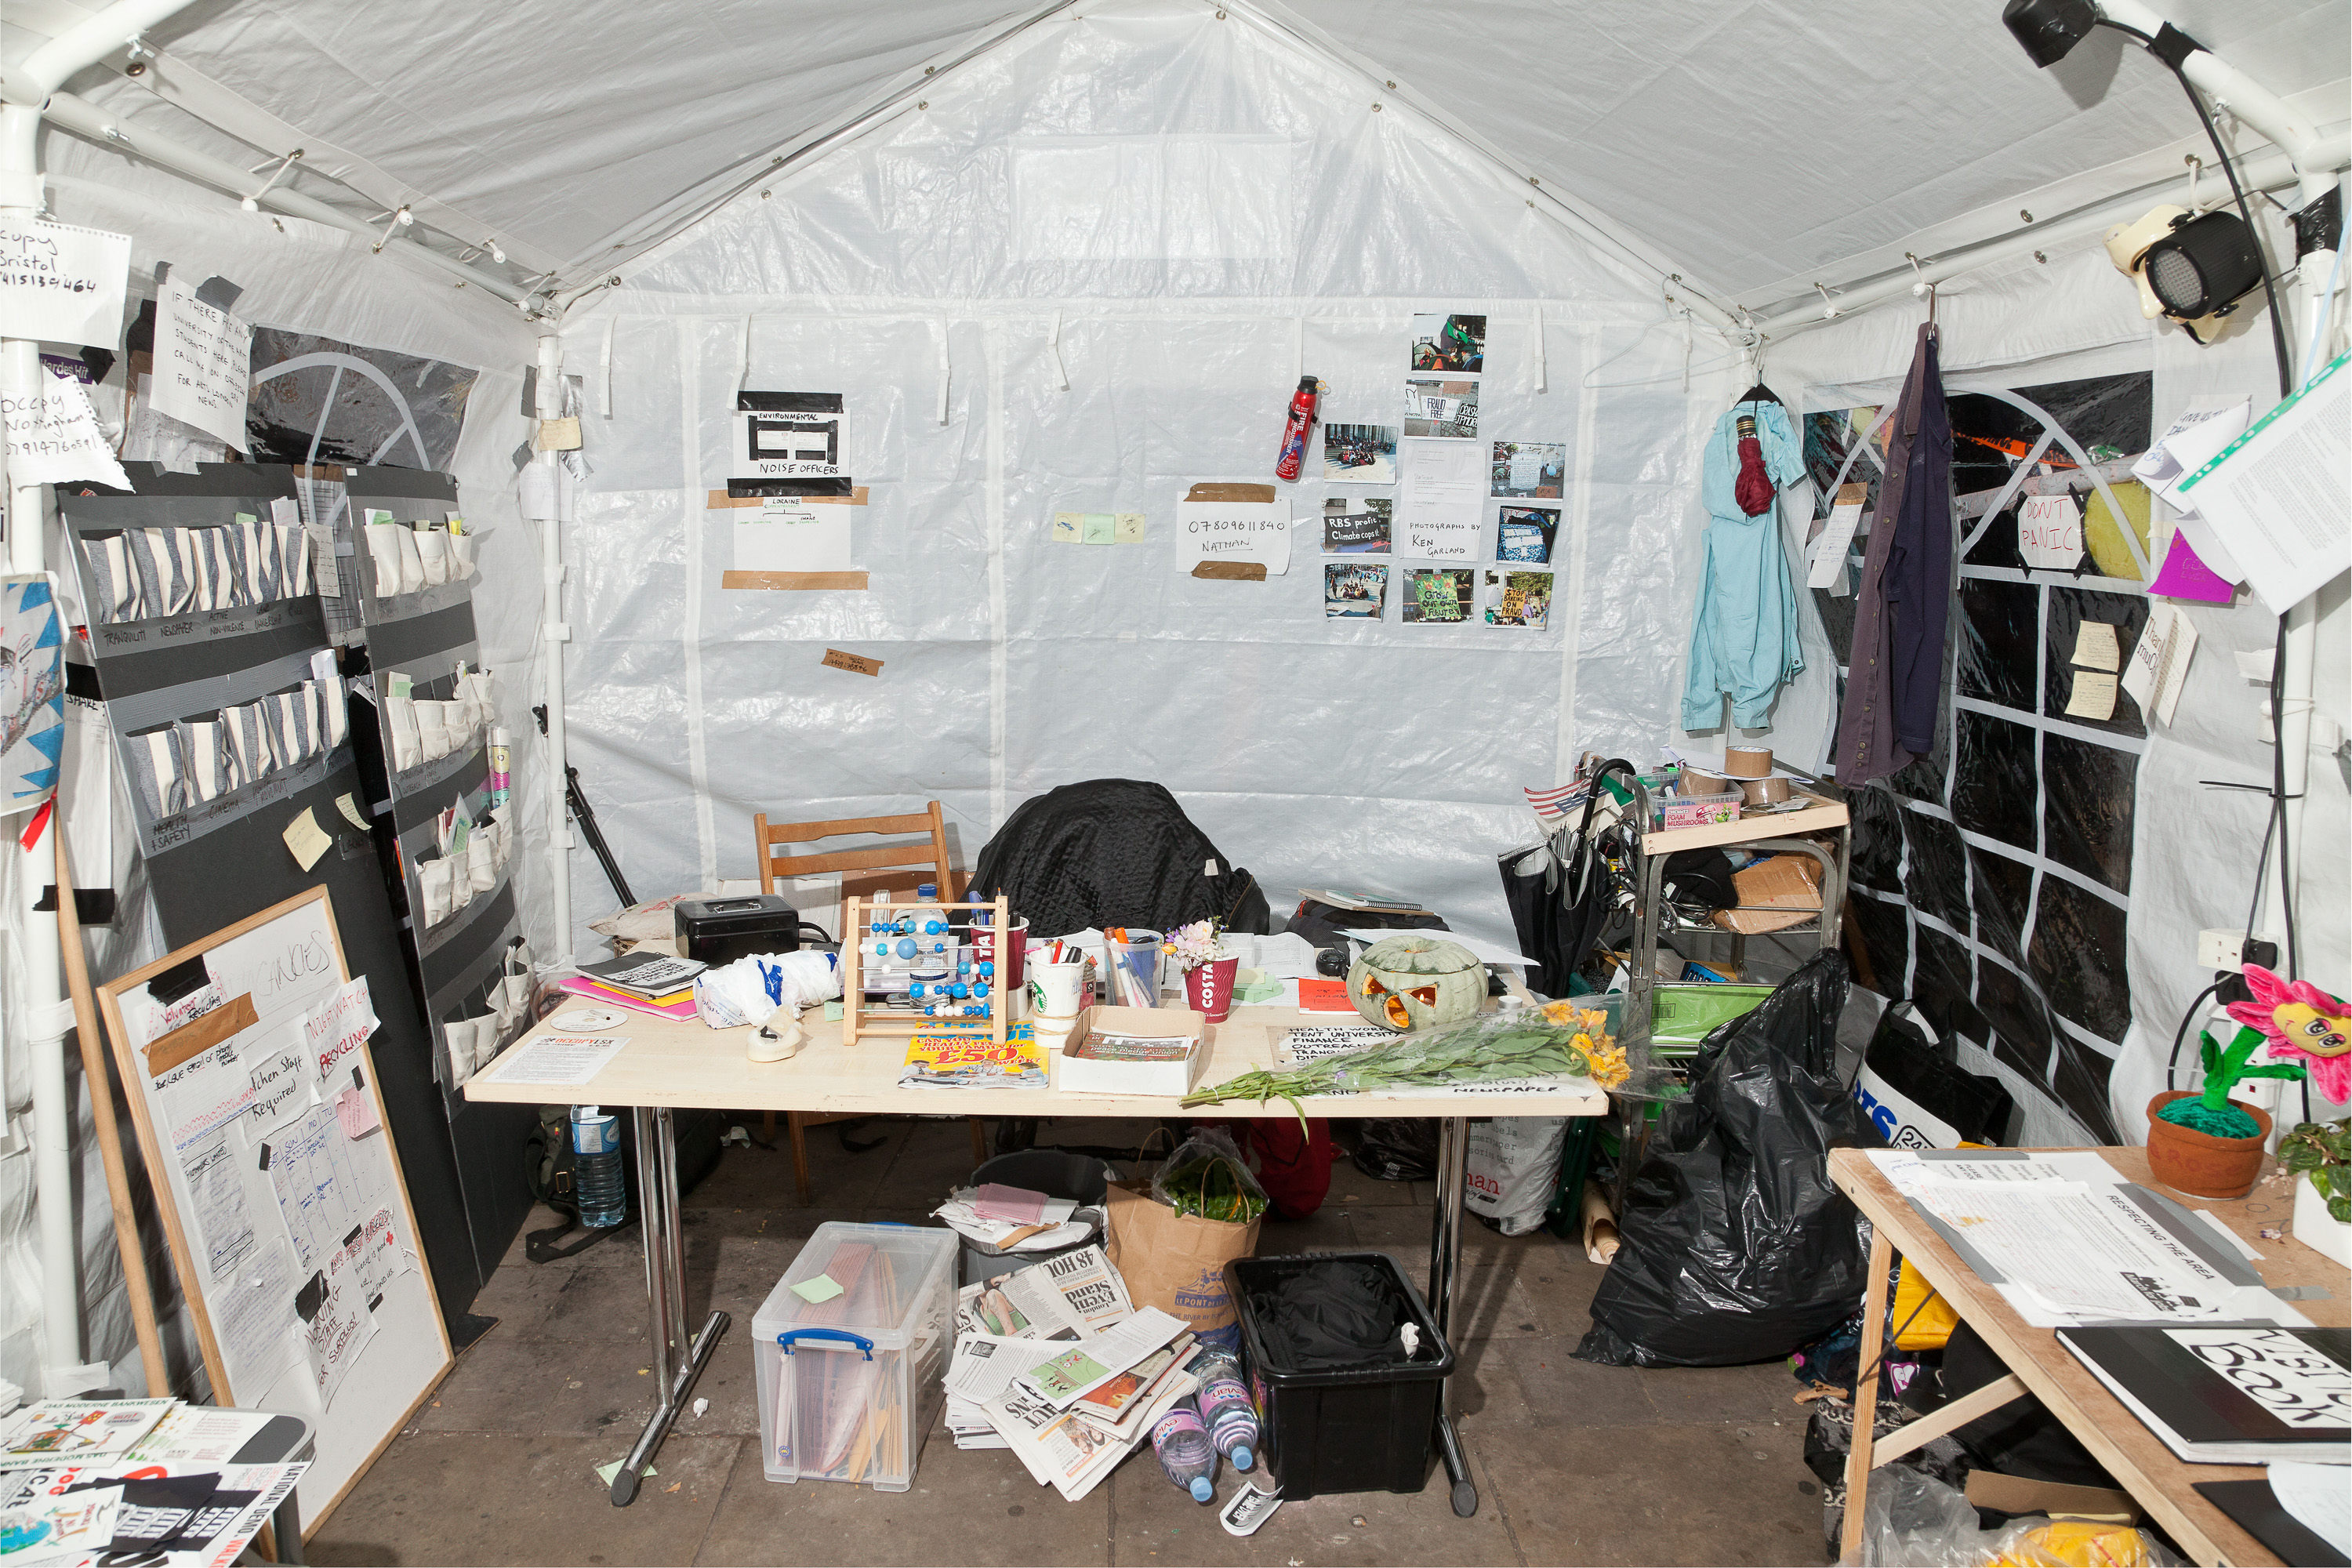 Main Information Tent, St. Paul's Camp. This space was the main hub of the St Paul's Camp - a first point of contact for media, new protestors, and anyone with an enquiry.